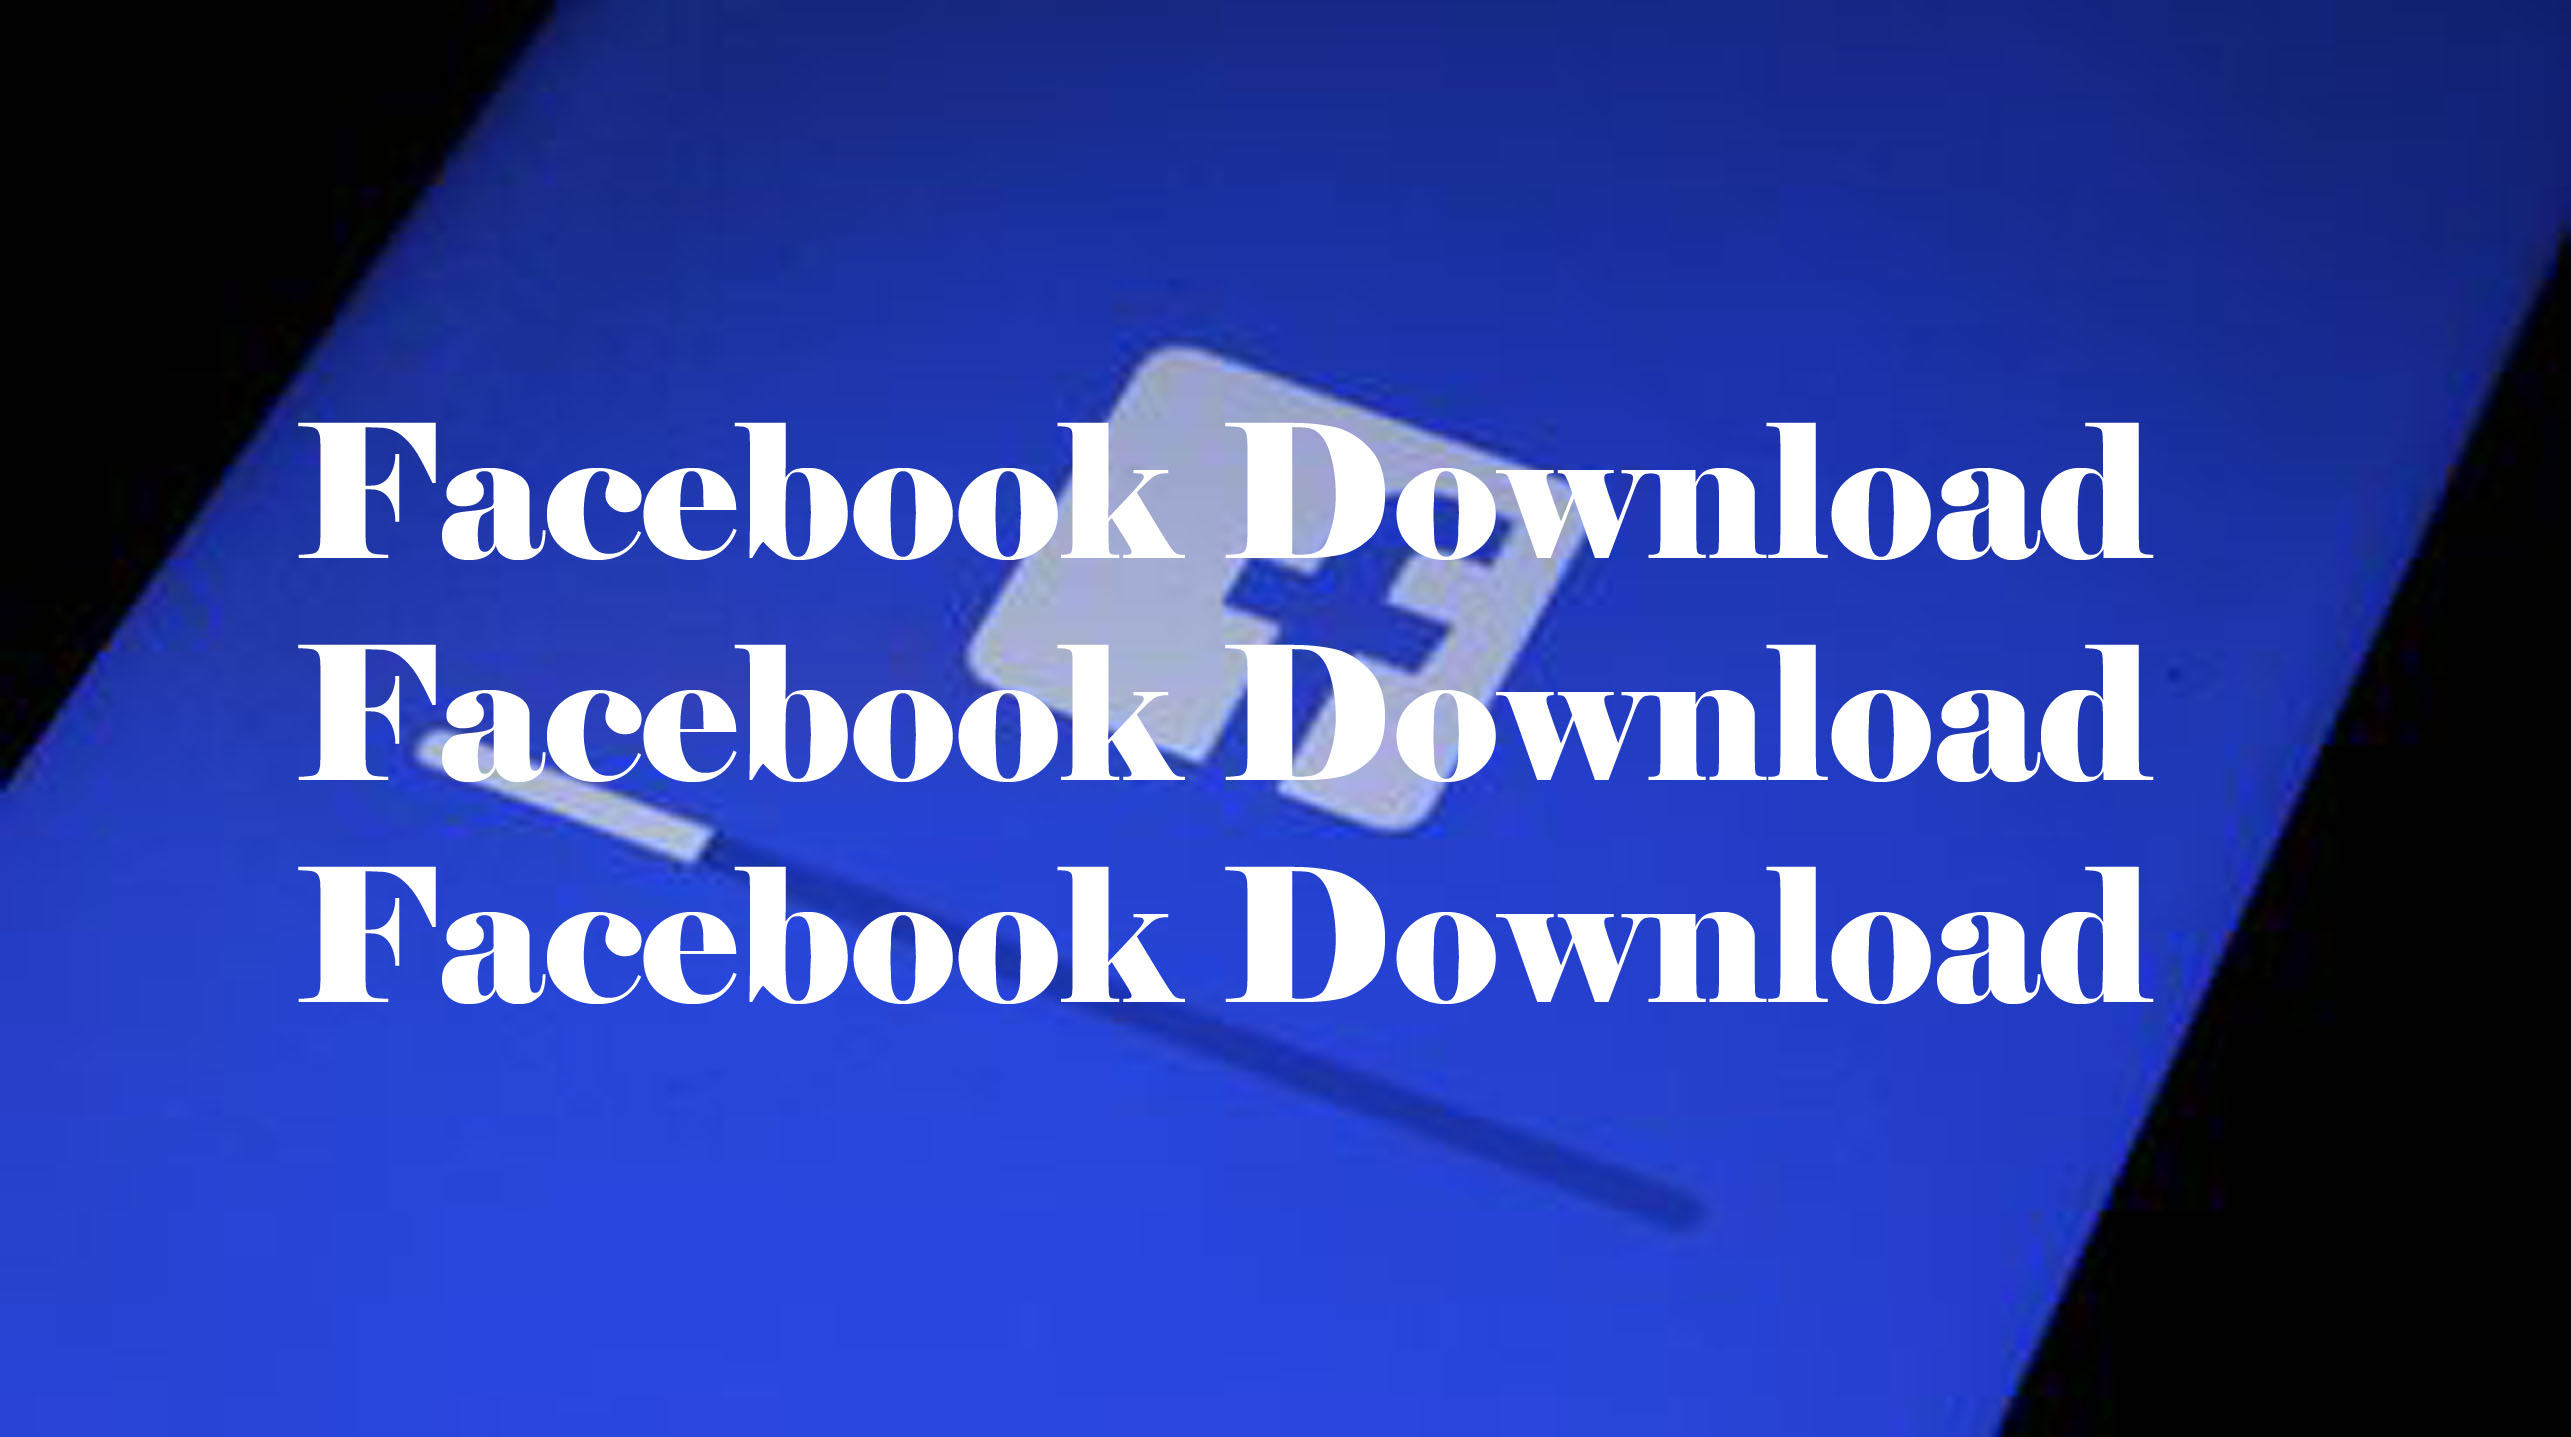 Facebook Download Facebook Download Facebook Download